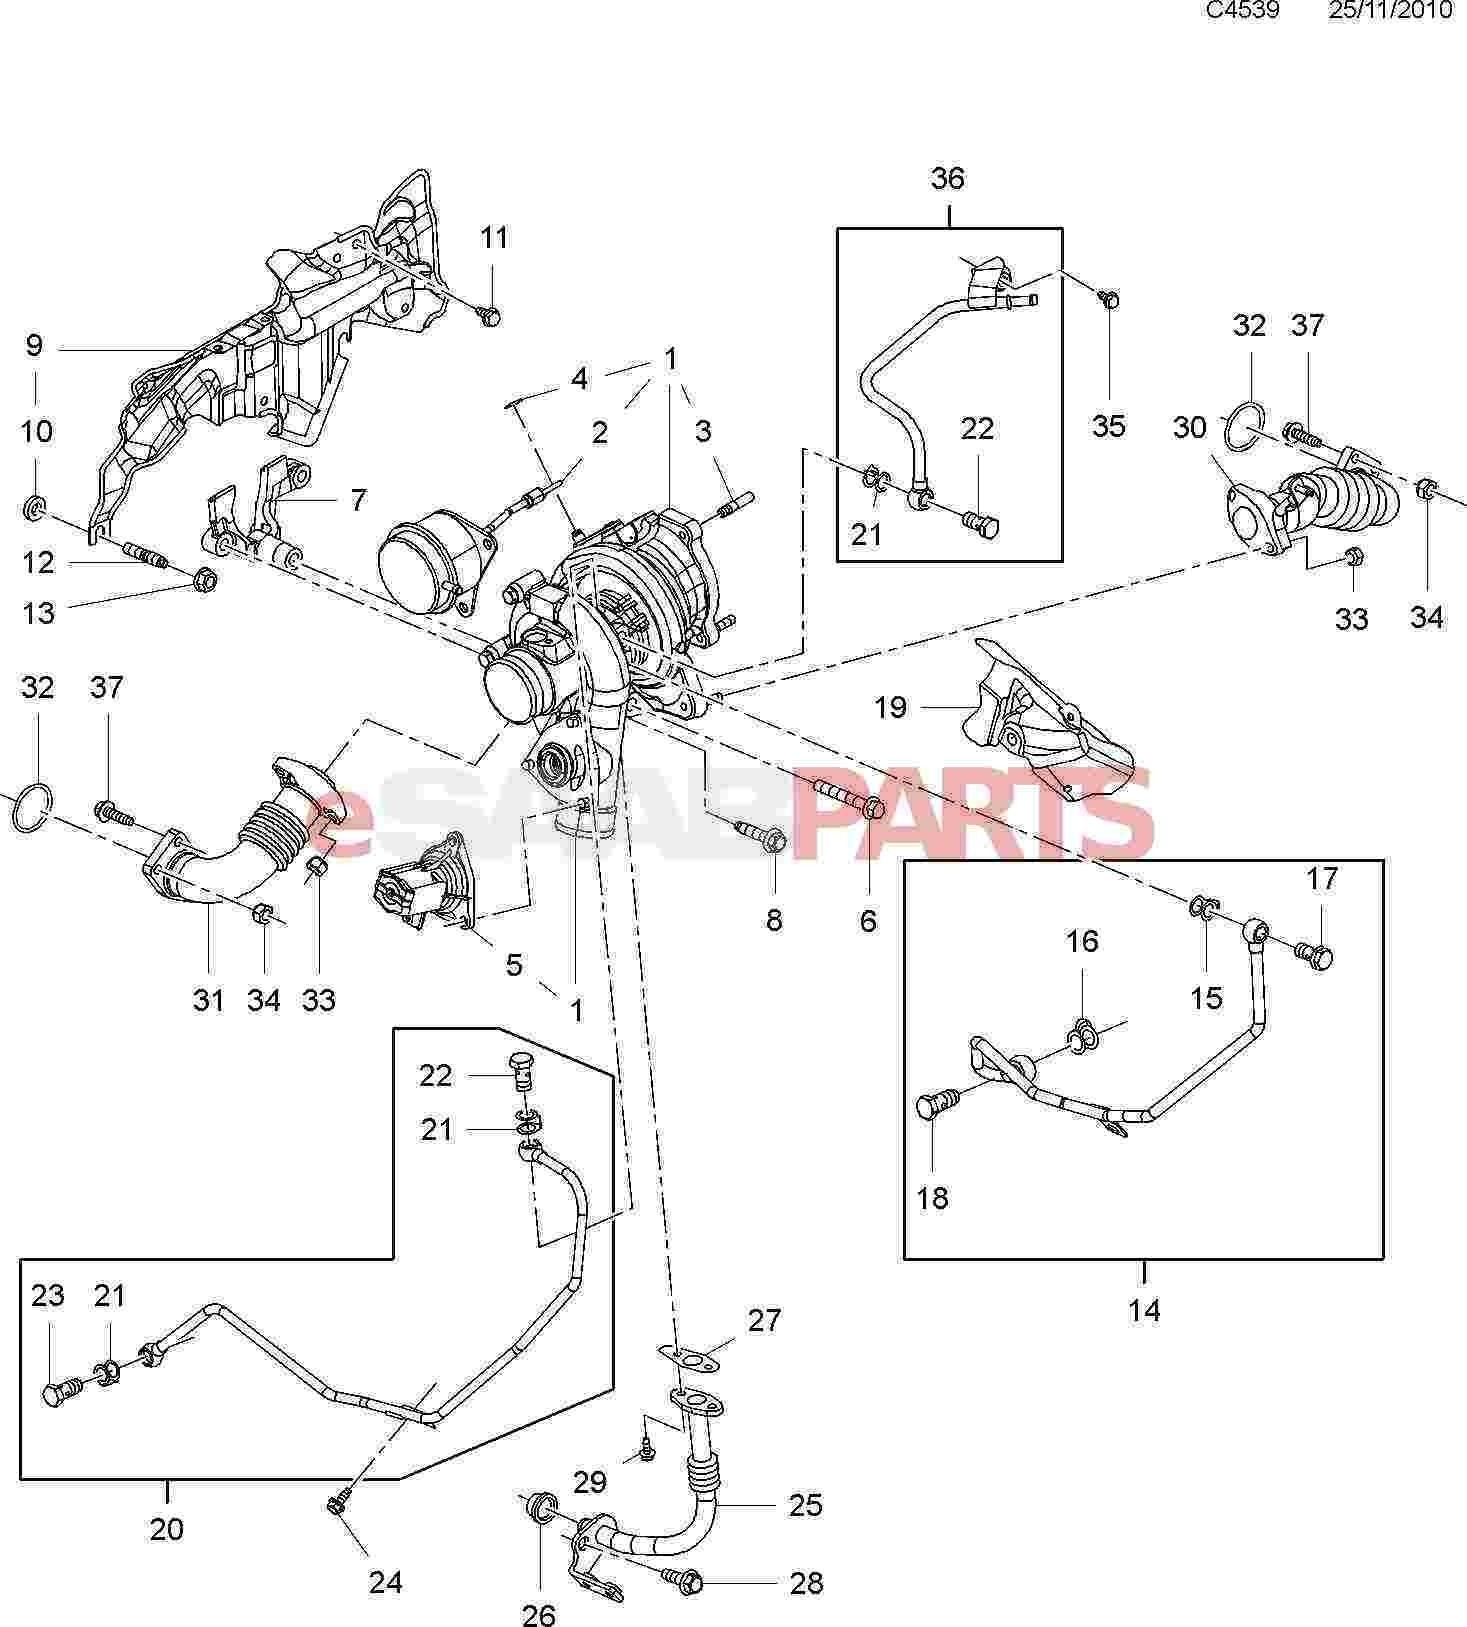 Saab 93 Engine Diagram 2000 Volvo V70 Wiring Trans S70 Related Post